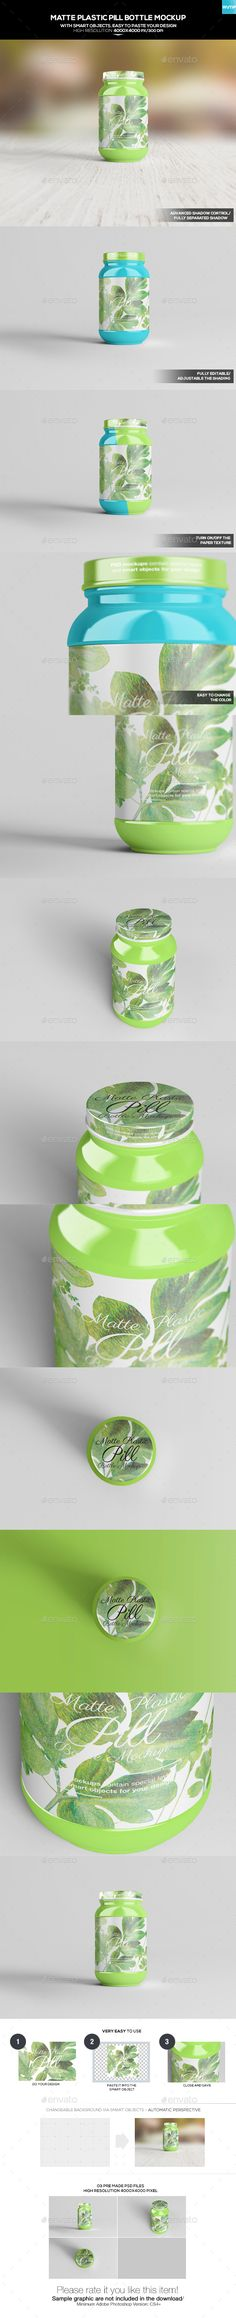 Matte Plastic Pill Bottle - #Miscellaneous #Packaging Download here: https://graphicriver.net/item/matte-plastic-pill-bottle/20182987?ref=alena994